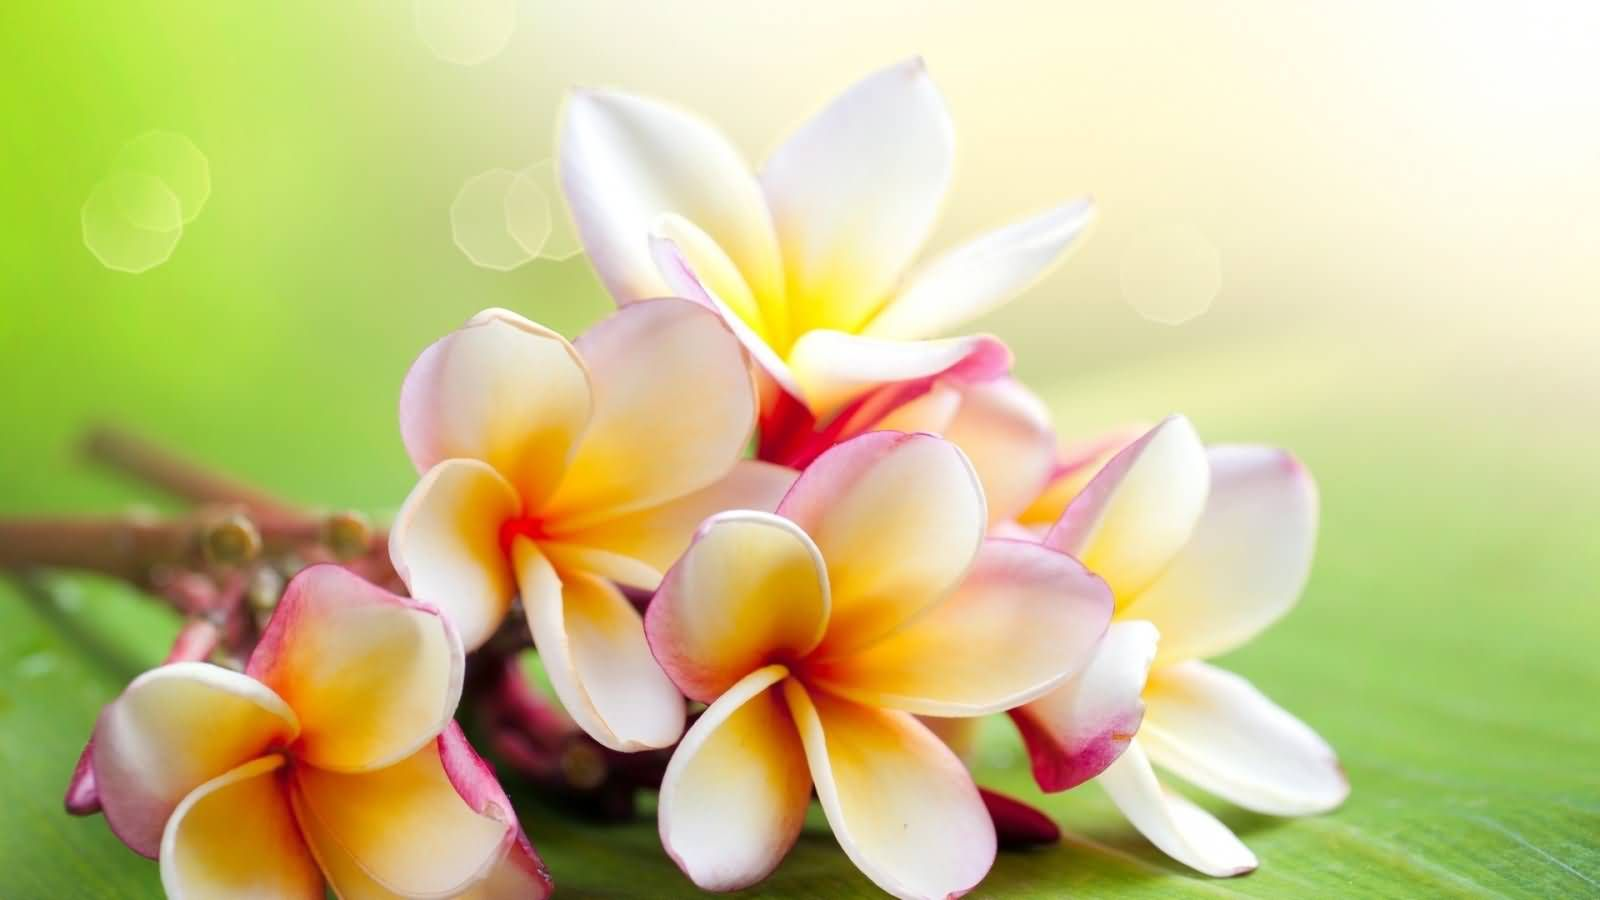 Wallpapers Tropical Flowers